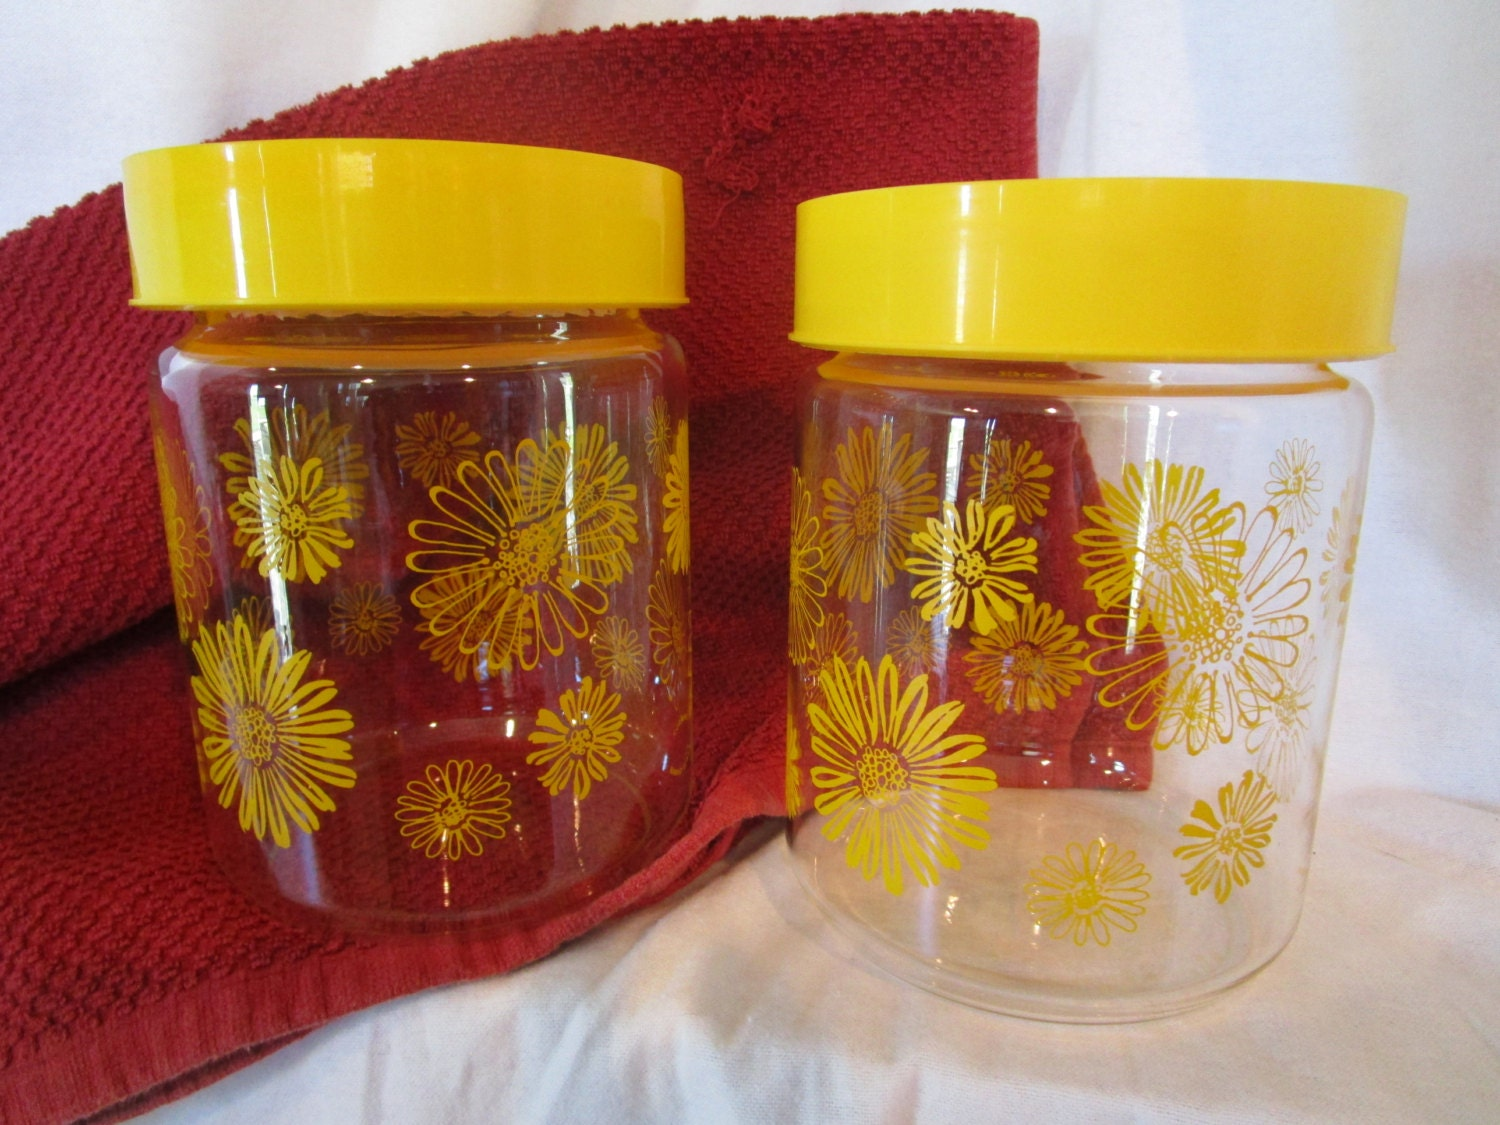 yellow daisy canisters corning glass canisters daisy storage